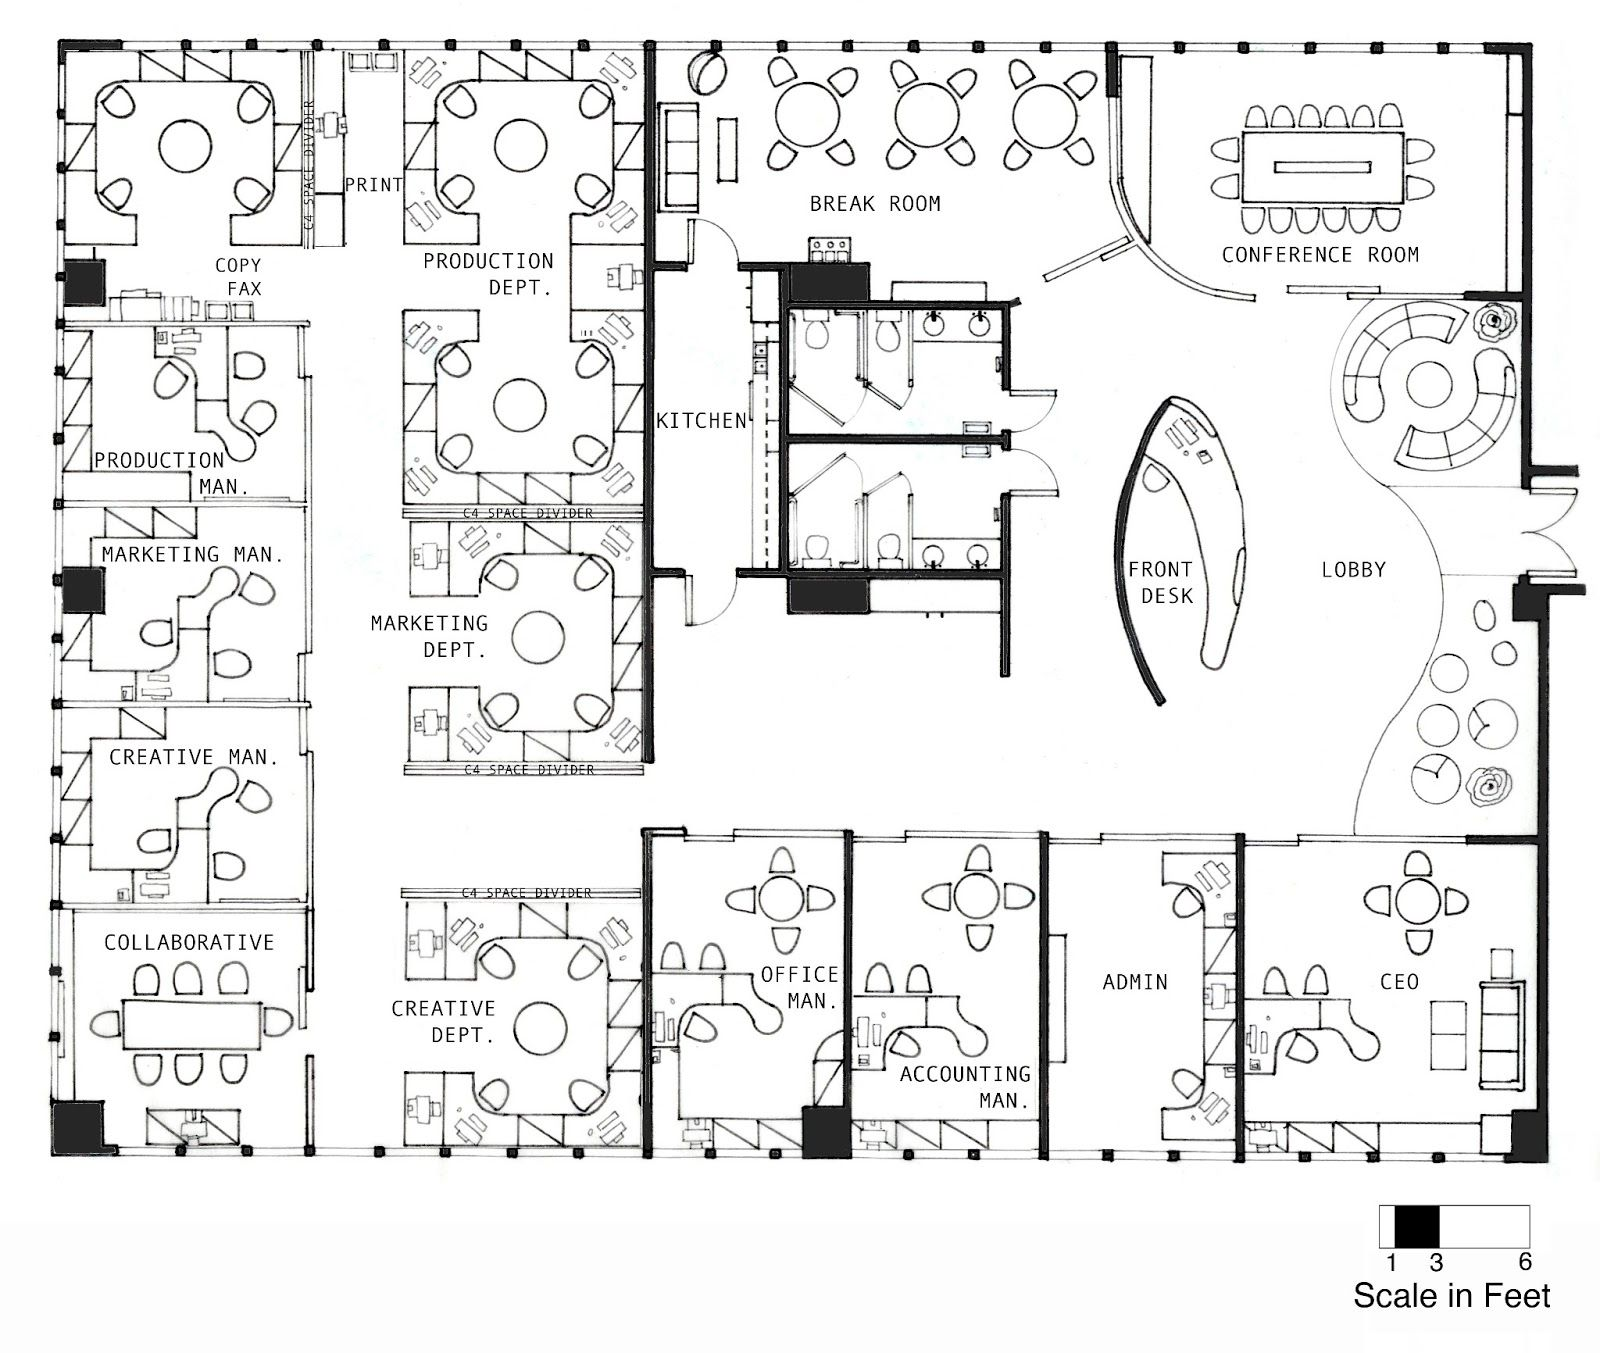 Office interior layout plan delectable furniture concept Office building floor plan layout